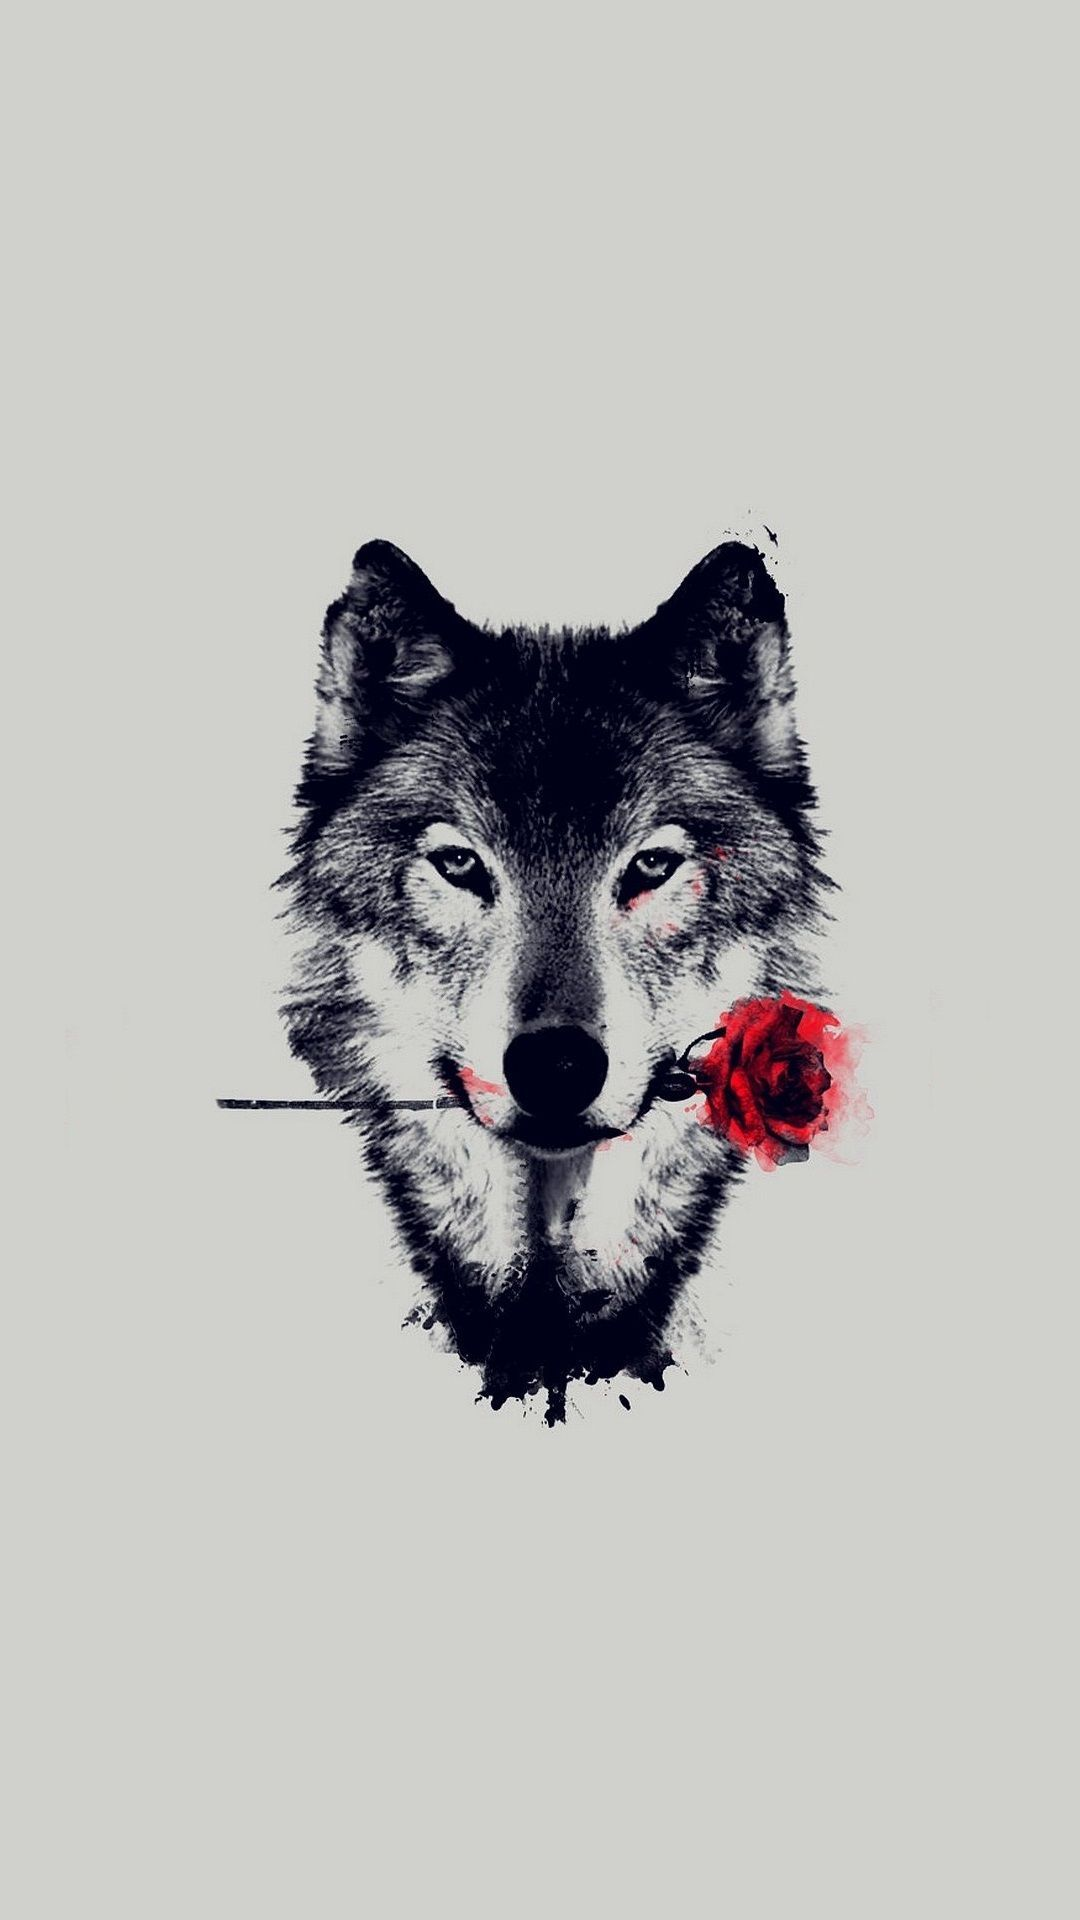 Wolf Art Wallpapers - Top Free Wolf Art